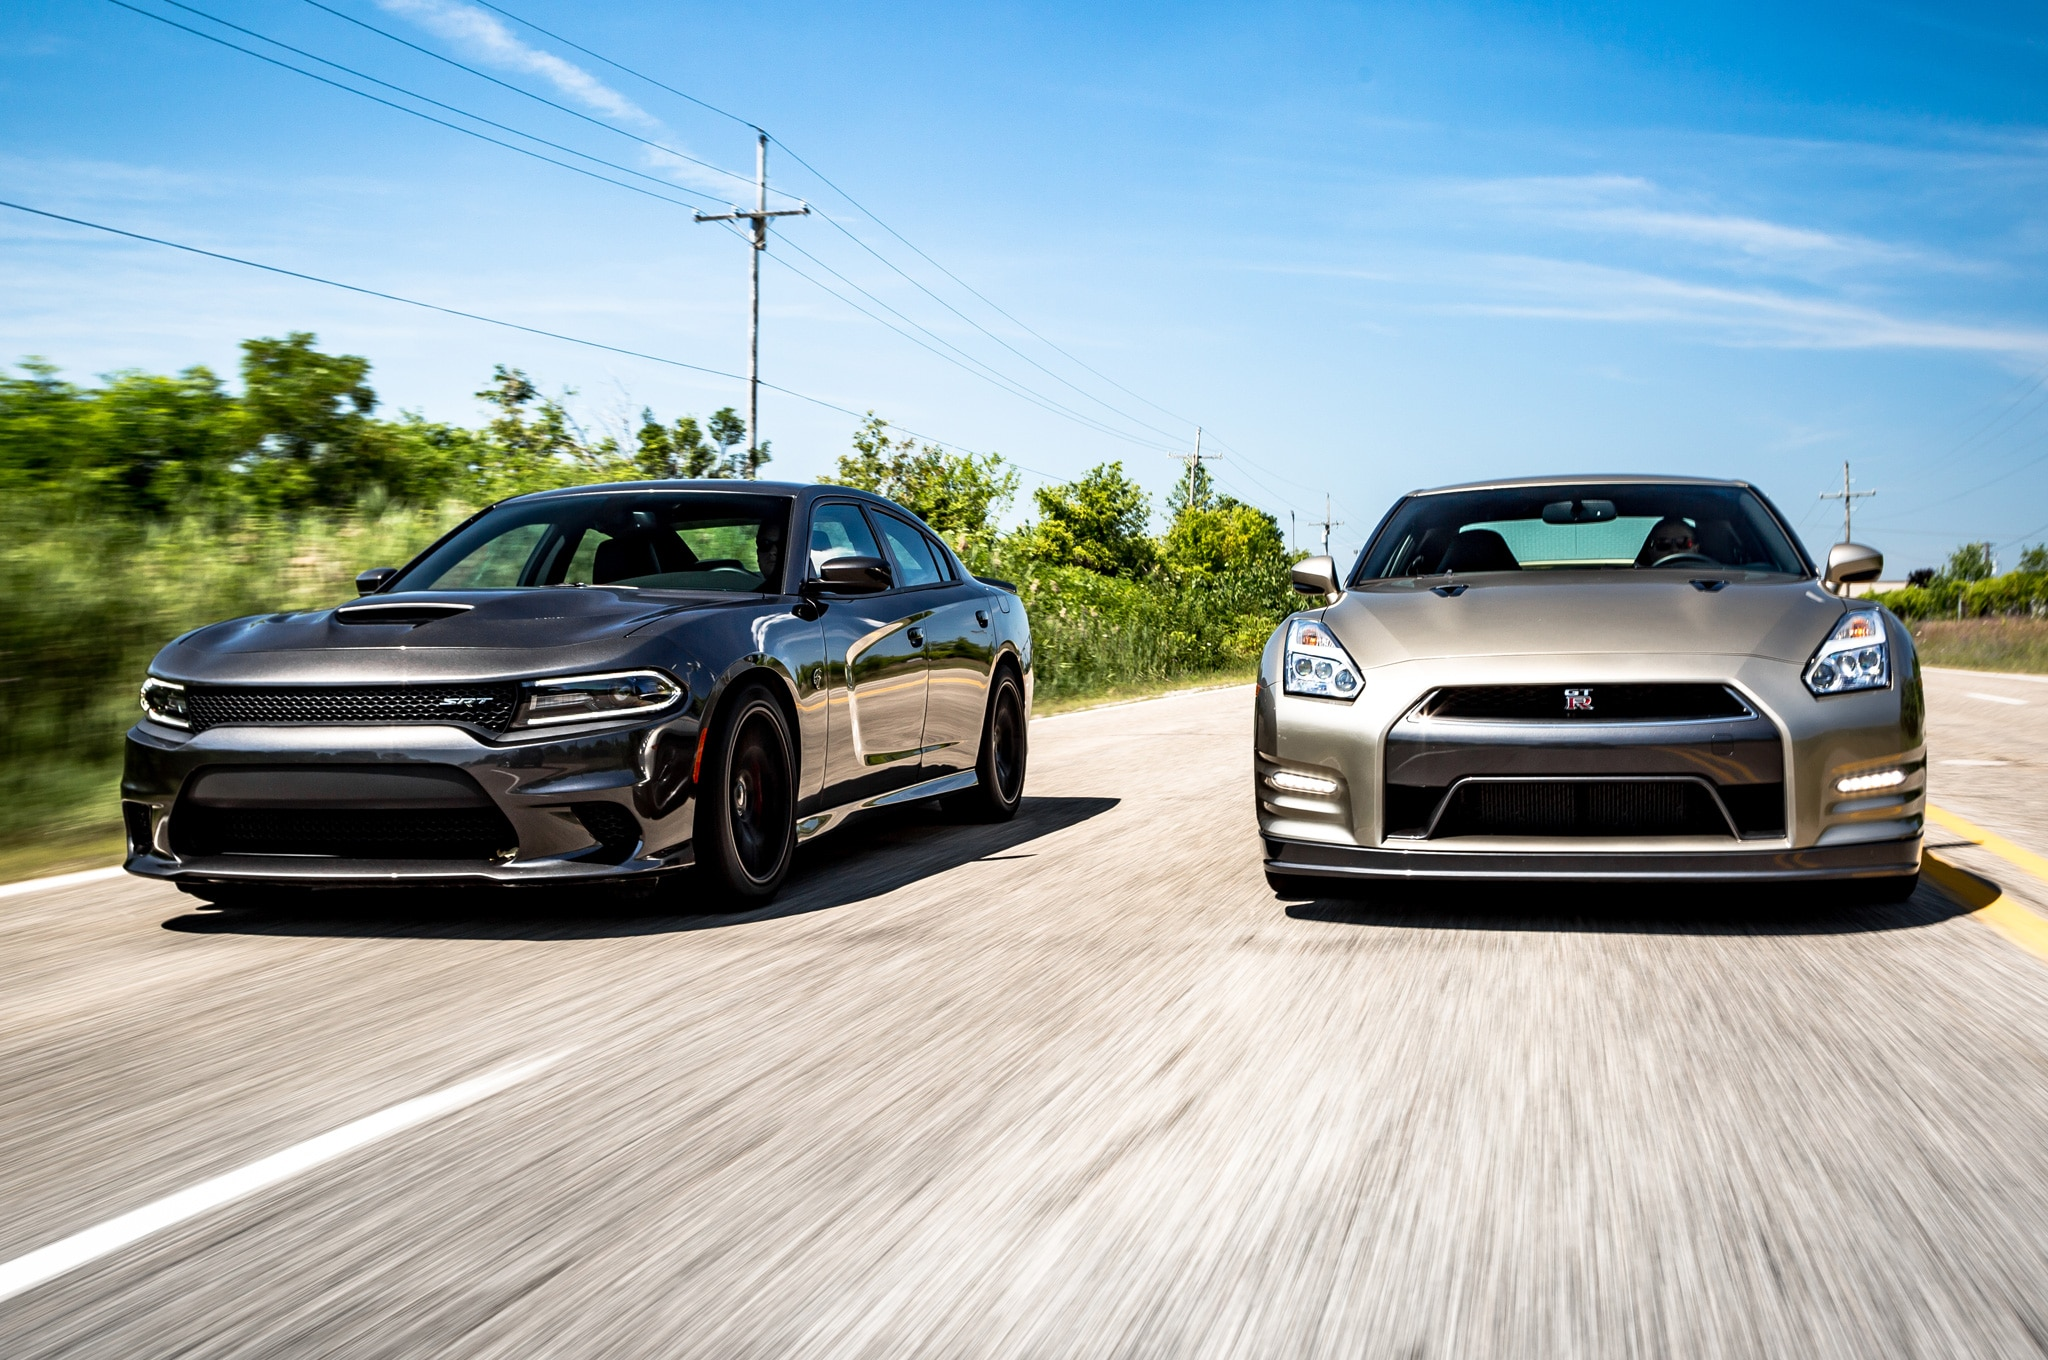 flavors of fast 2015 dodge charger hellcat vs 2016. Black Bedroom Furniture Sets. Home Design Ideas